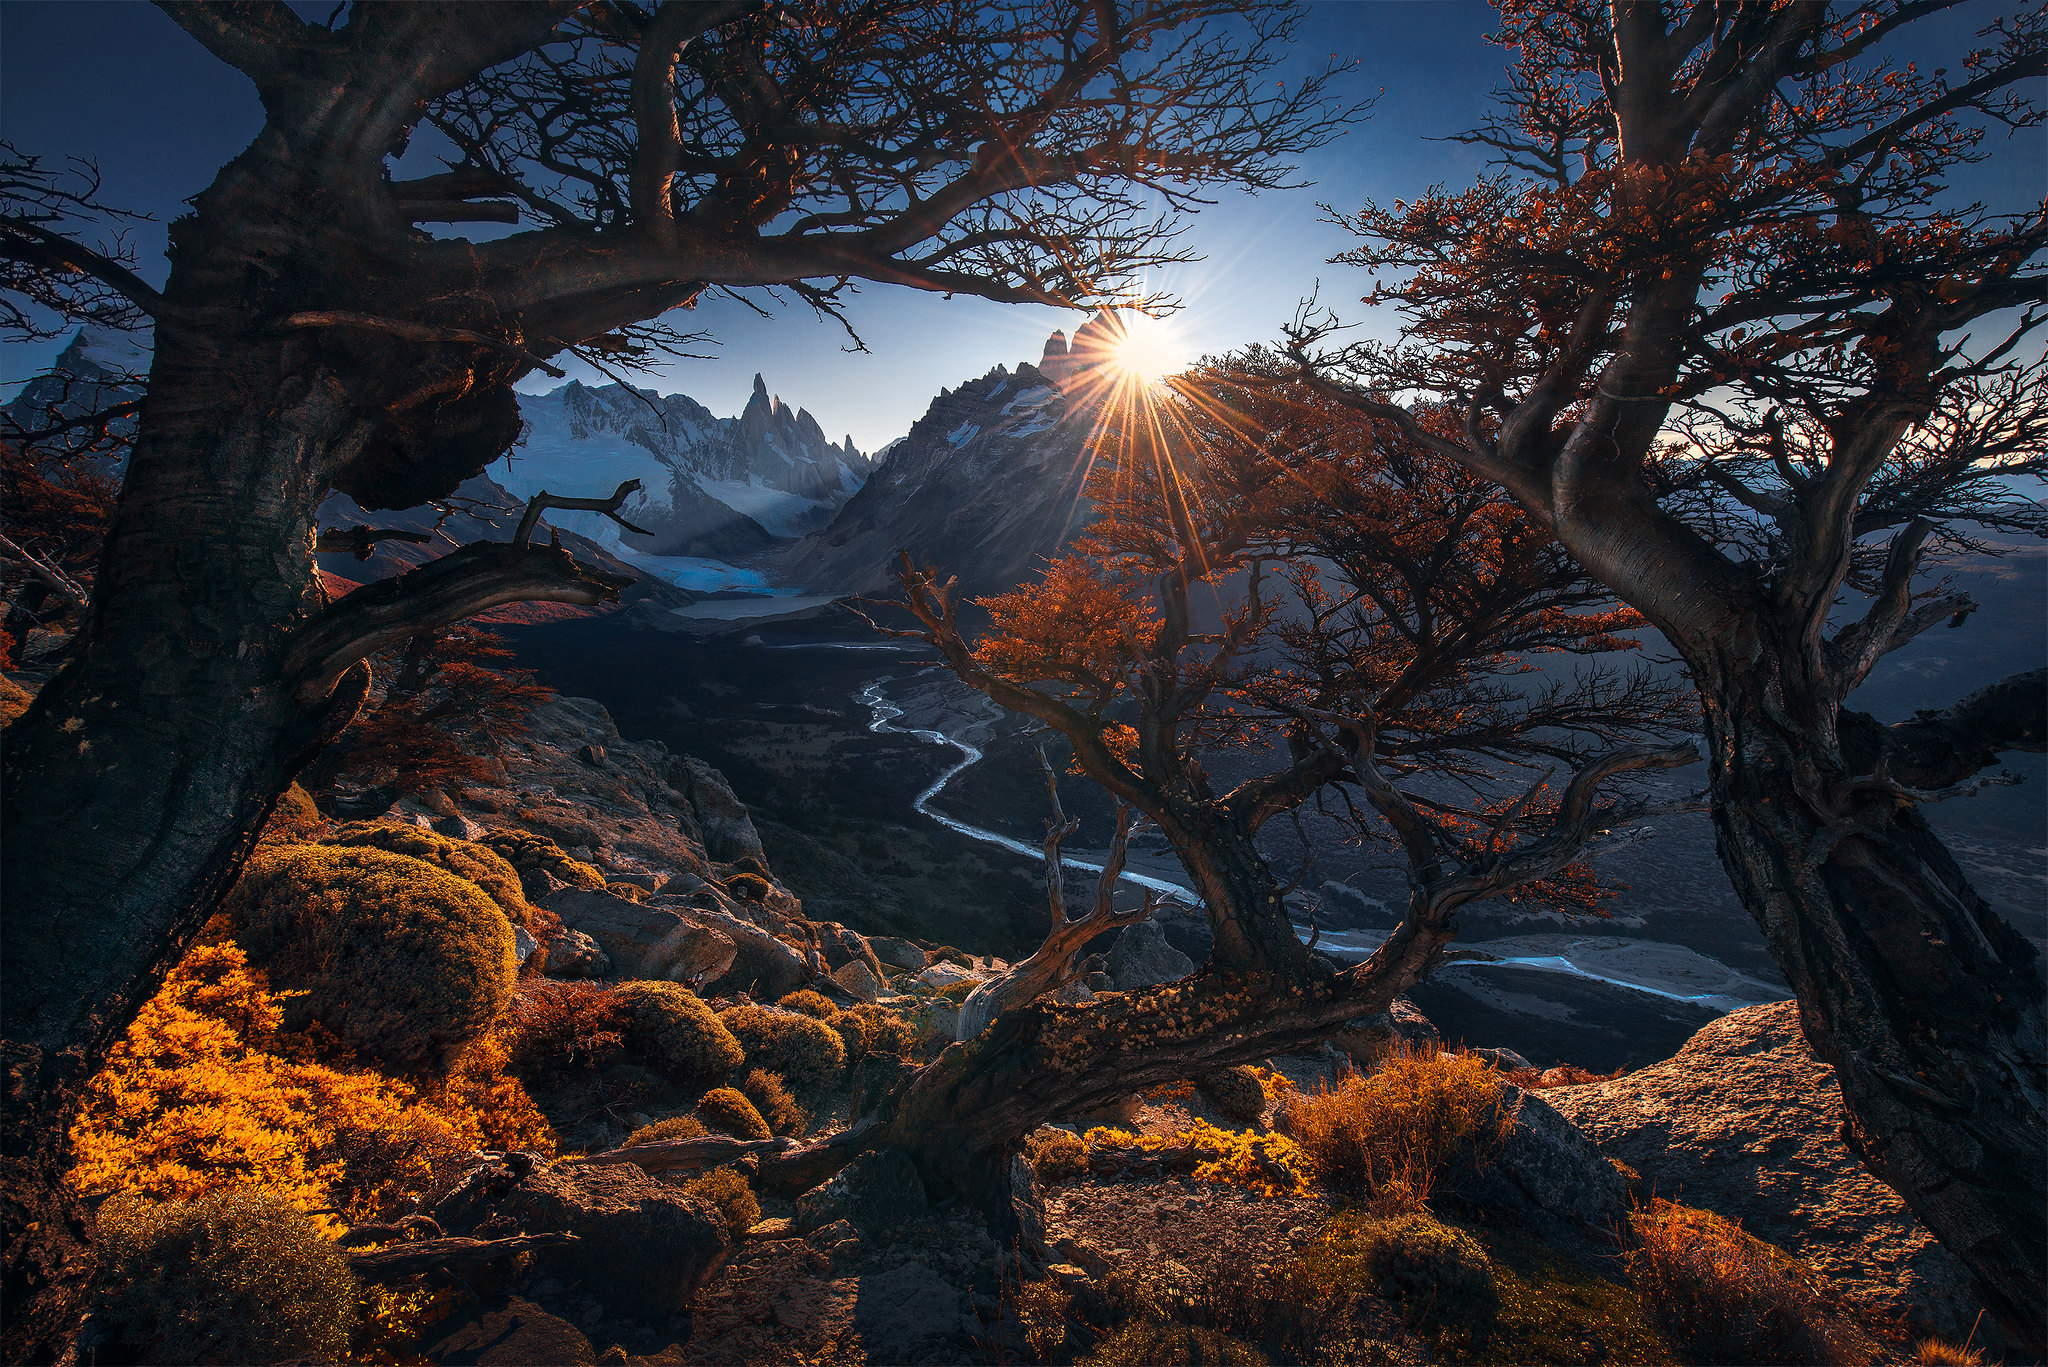 Max Rive - Photo Tours | Flickr